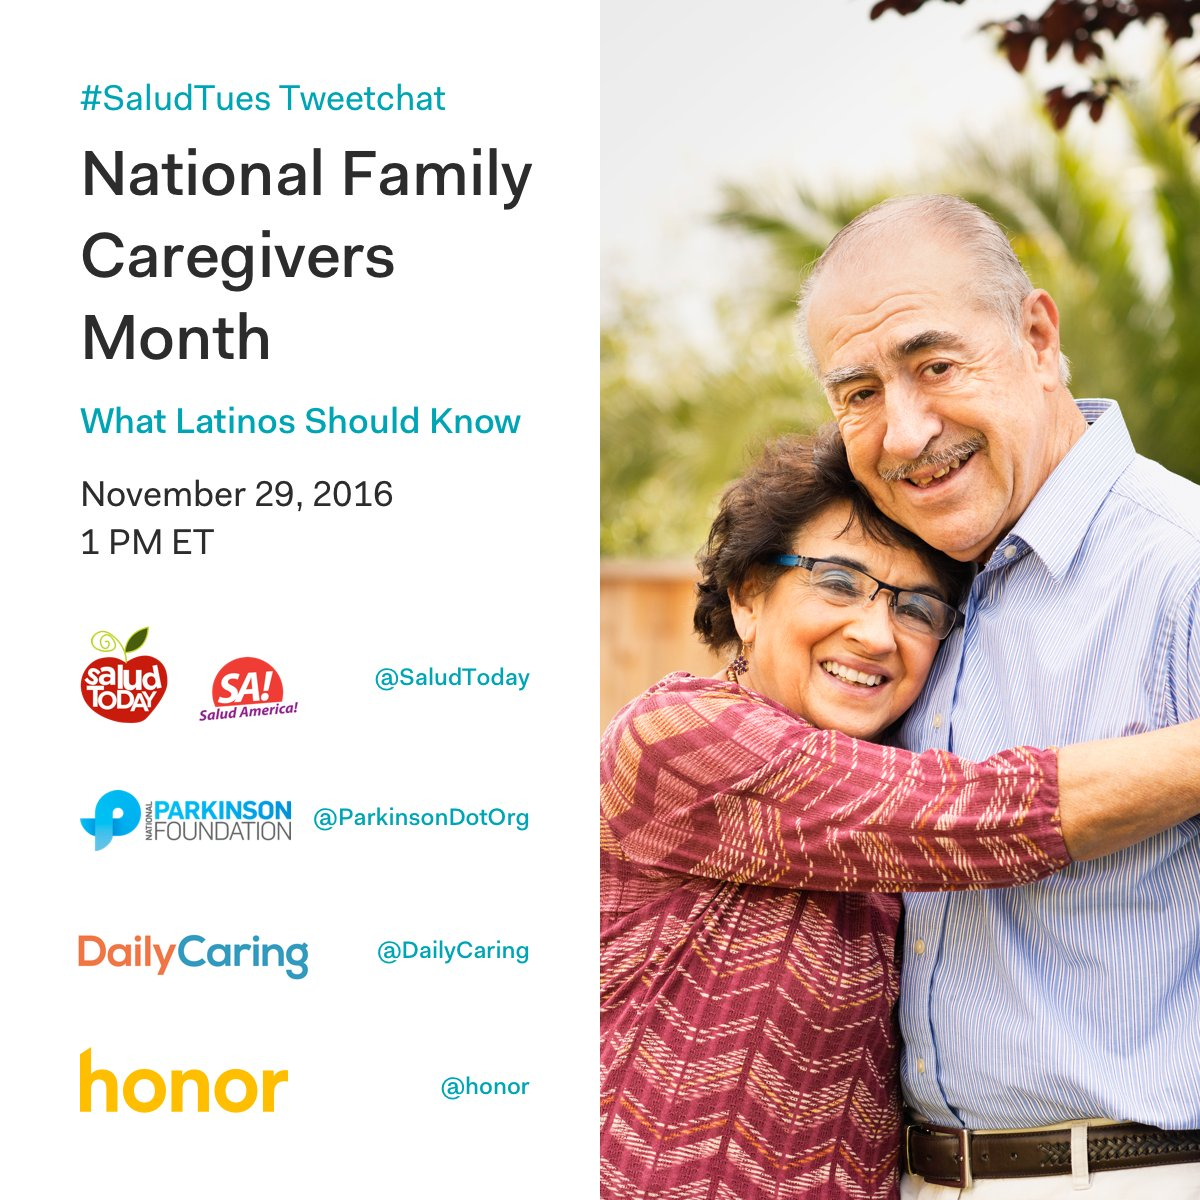 Thumbnail for National Family Caregivers Month: What Latinos Should Know